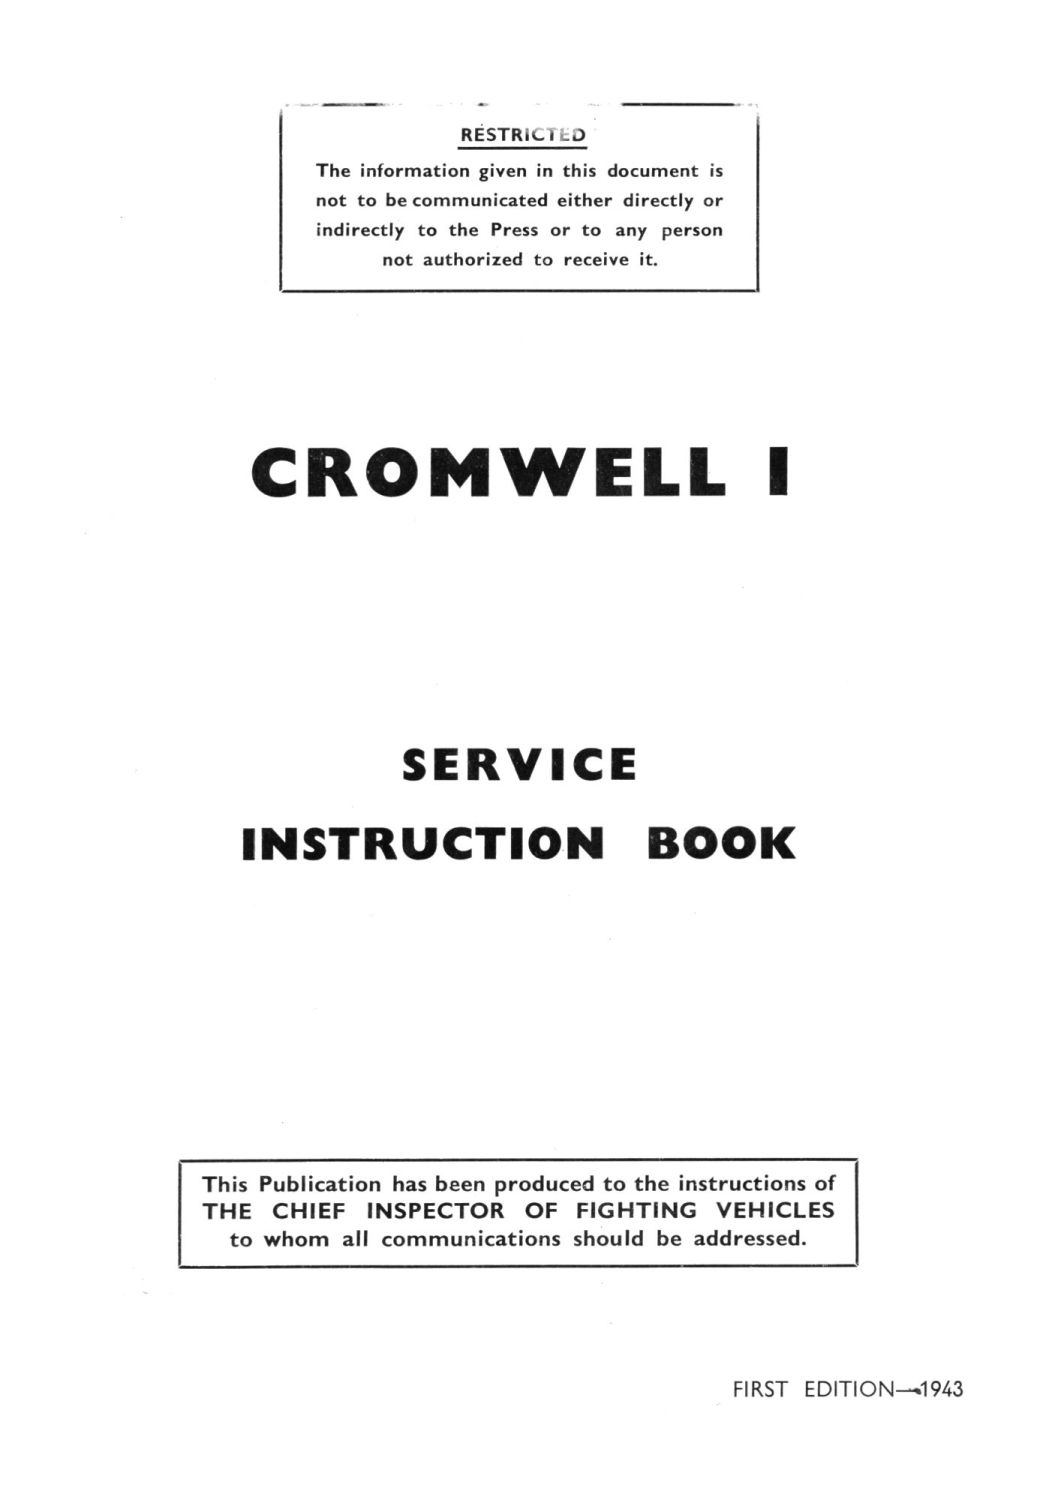 Cromwell I Service Instruction Book